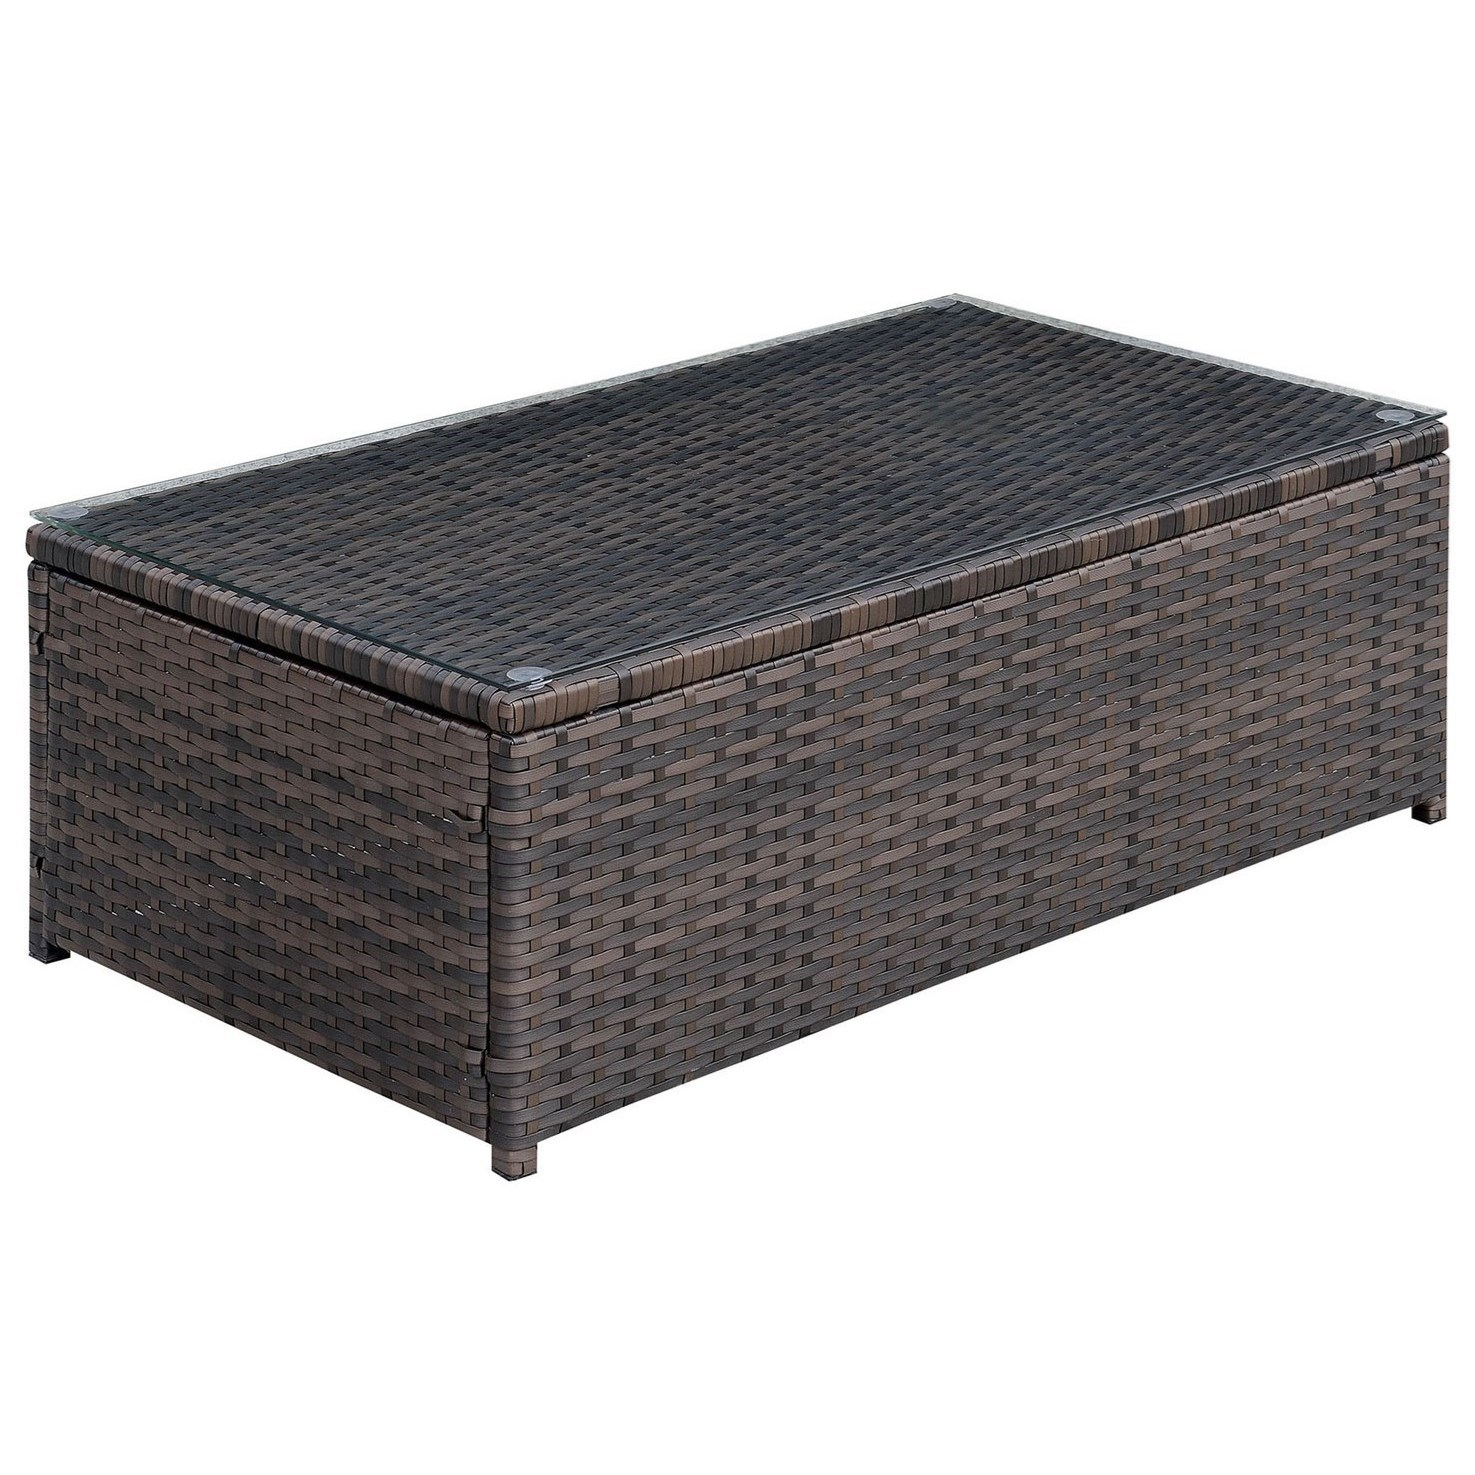 Ilona Coffee Table by Furniture of America at Value City Furniture